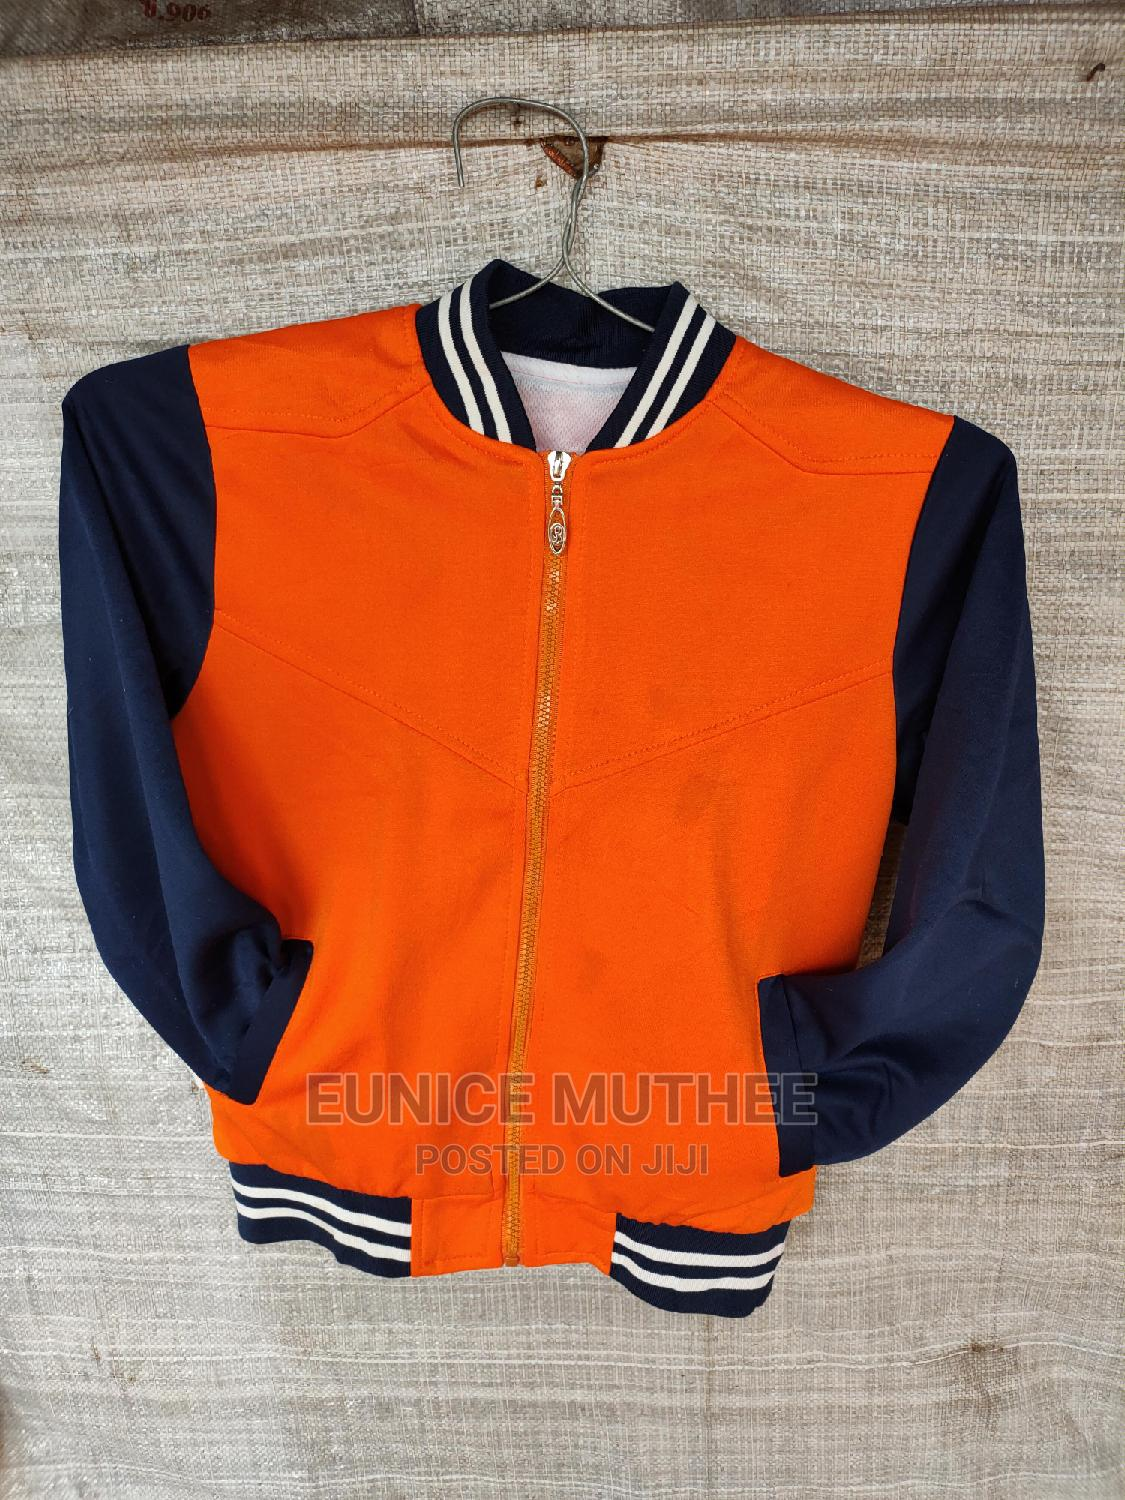 Jackets at Affordable Price